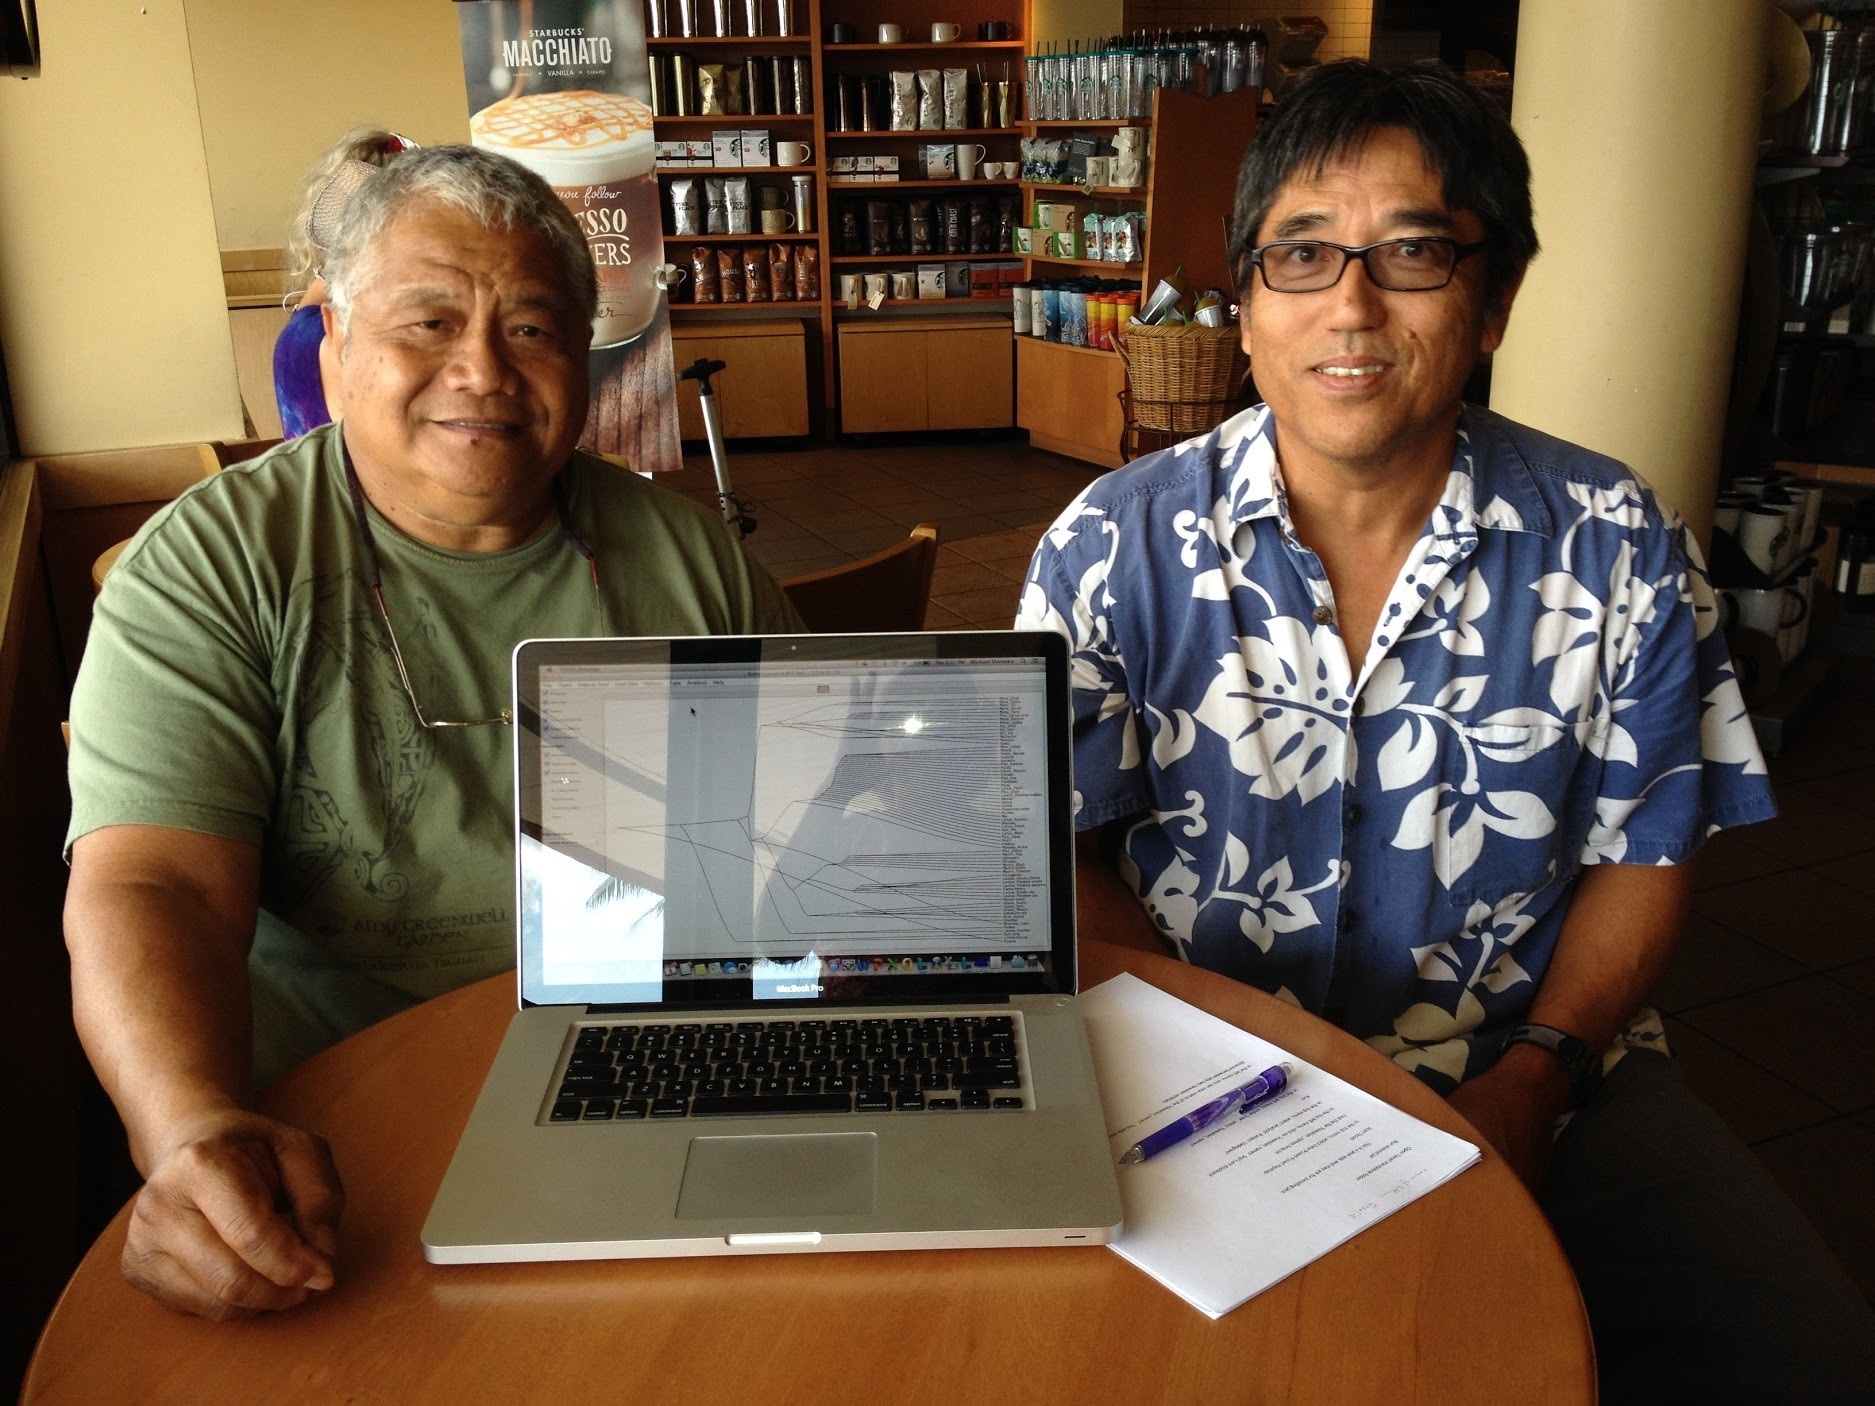 Uncle Jerry and Mike Shintaku in cafe with laptop open on table.